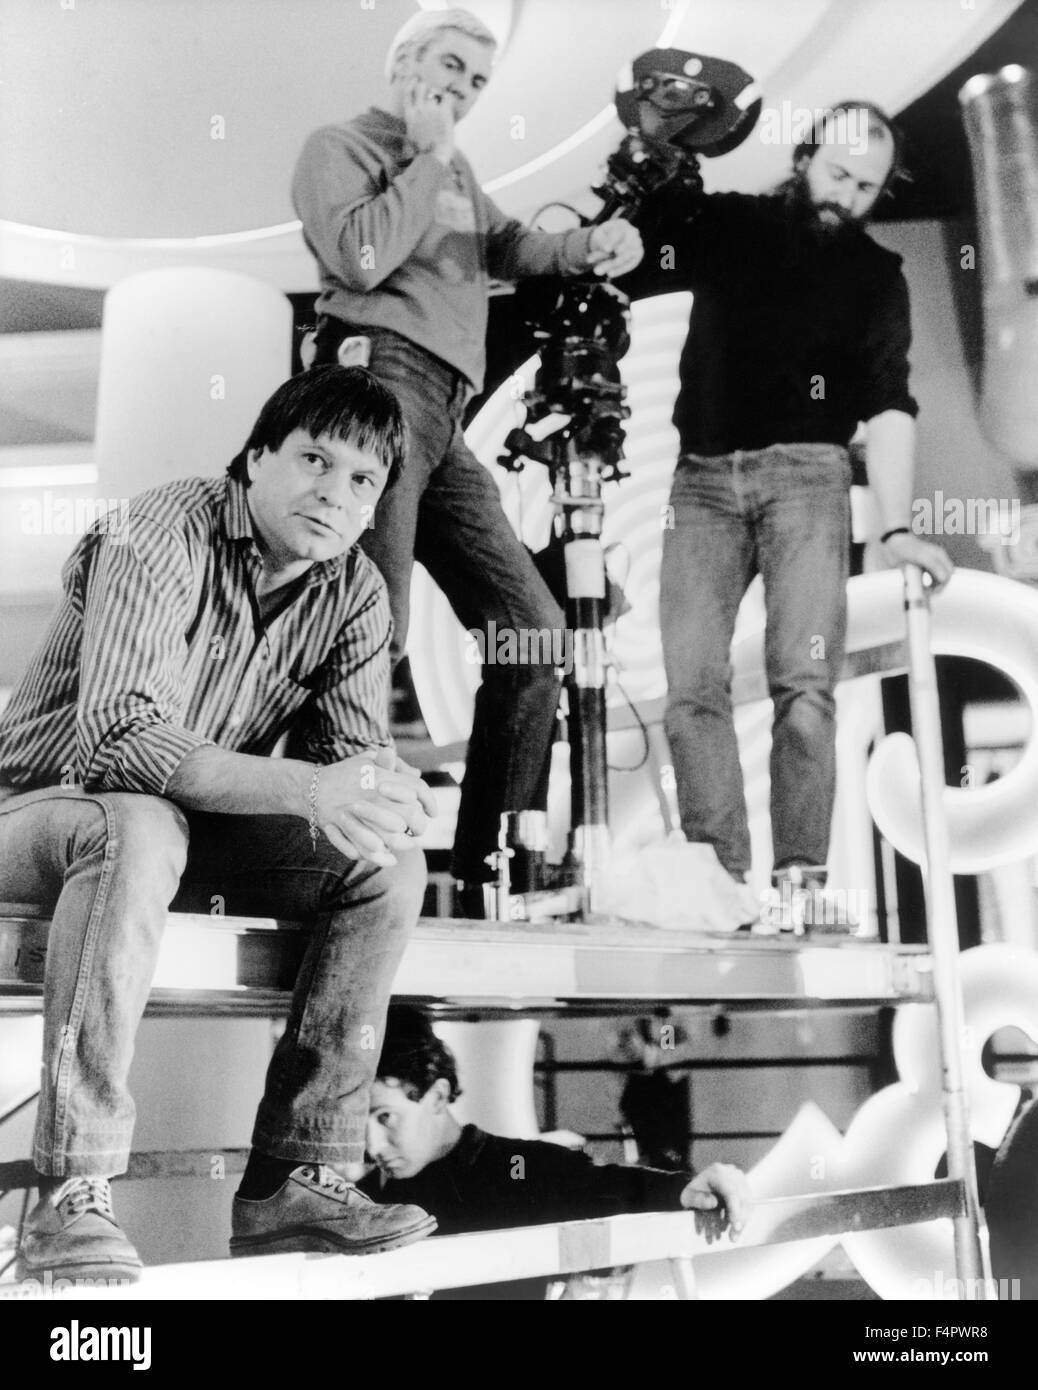 On the set, Terry Gilliam / Brazil / 1985 directed by Terry Gilliam [Embassy International Pictures] - Stock Image